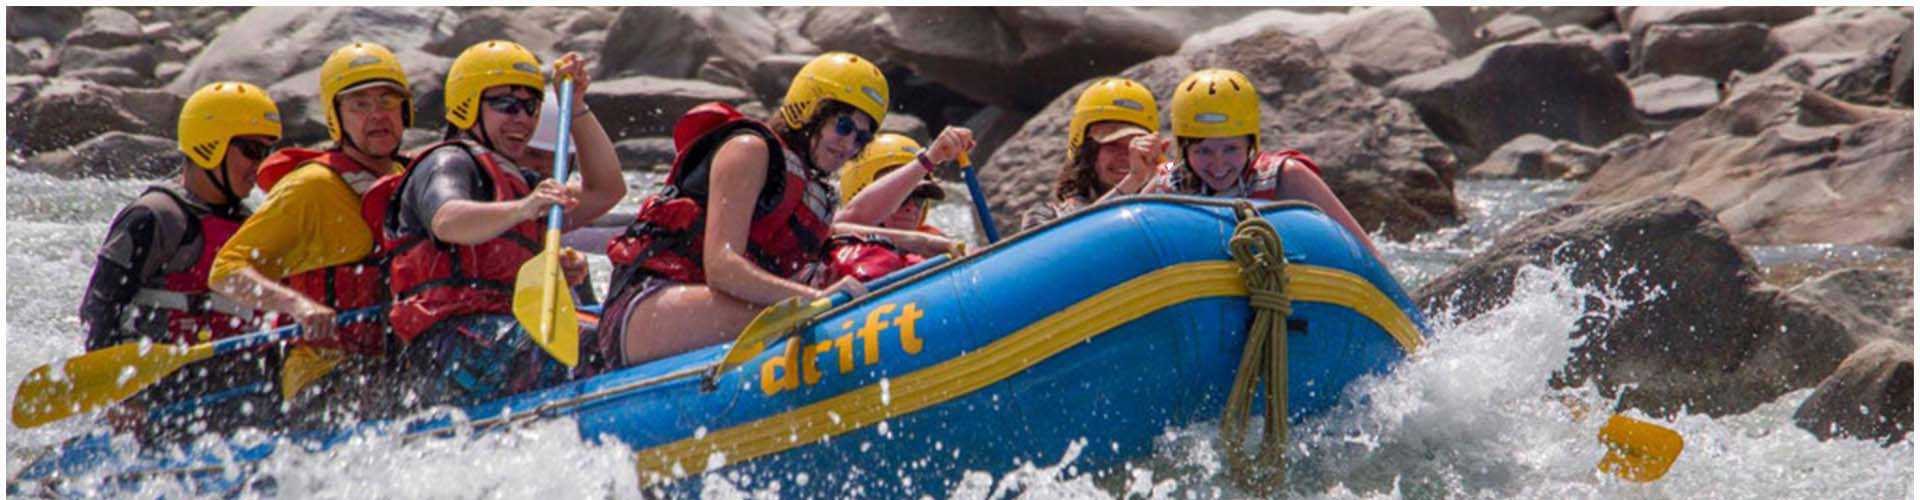 White Water Adventure River Rafting